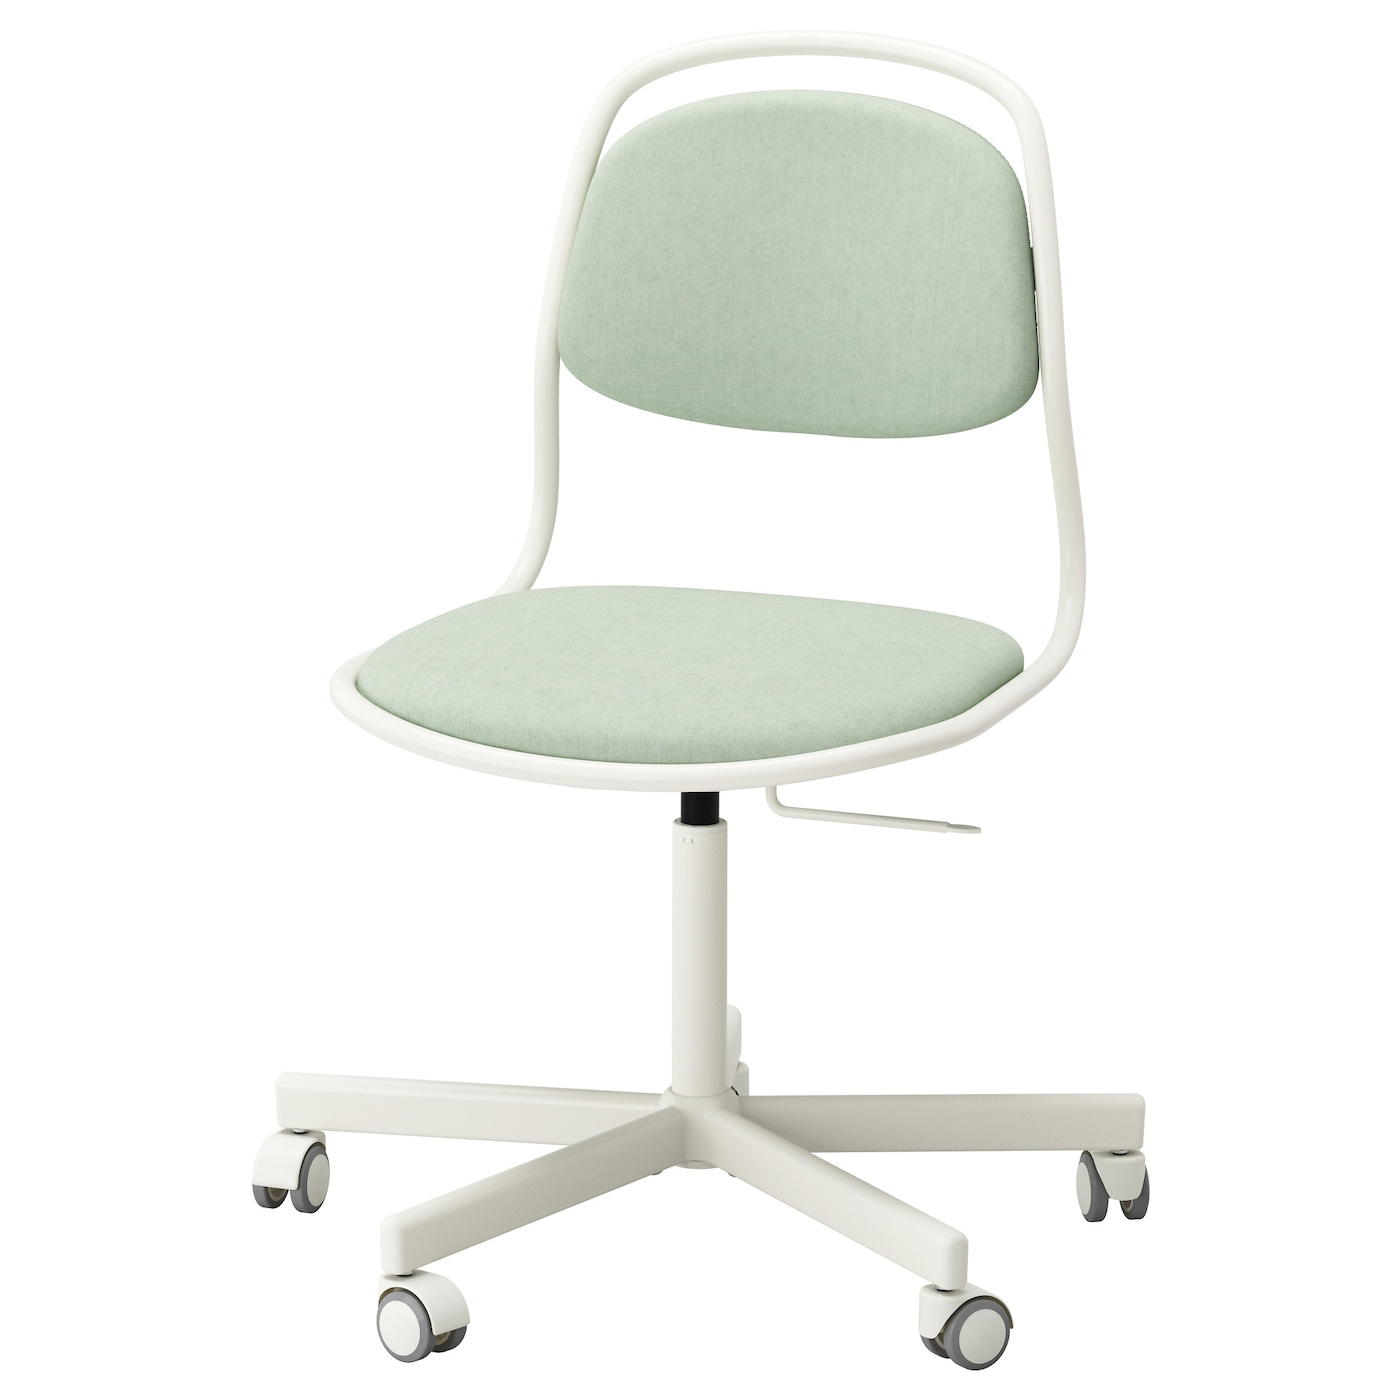 ikea office furniture office chairs office seating ikea 30035